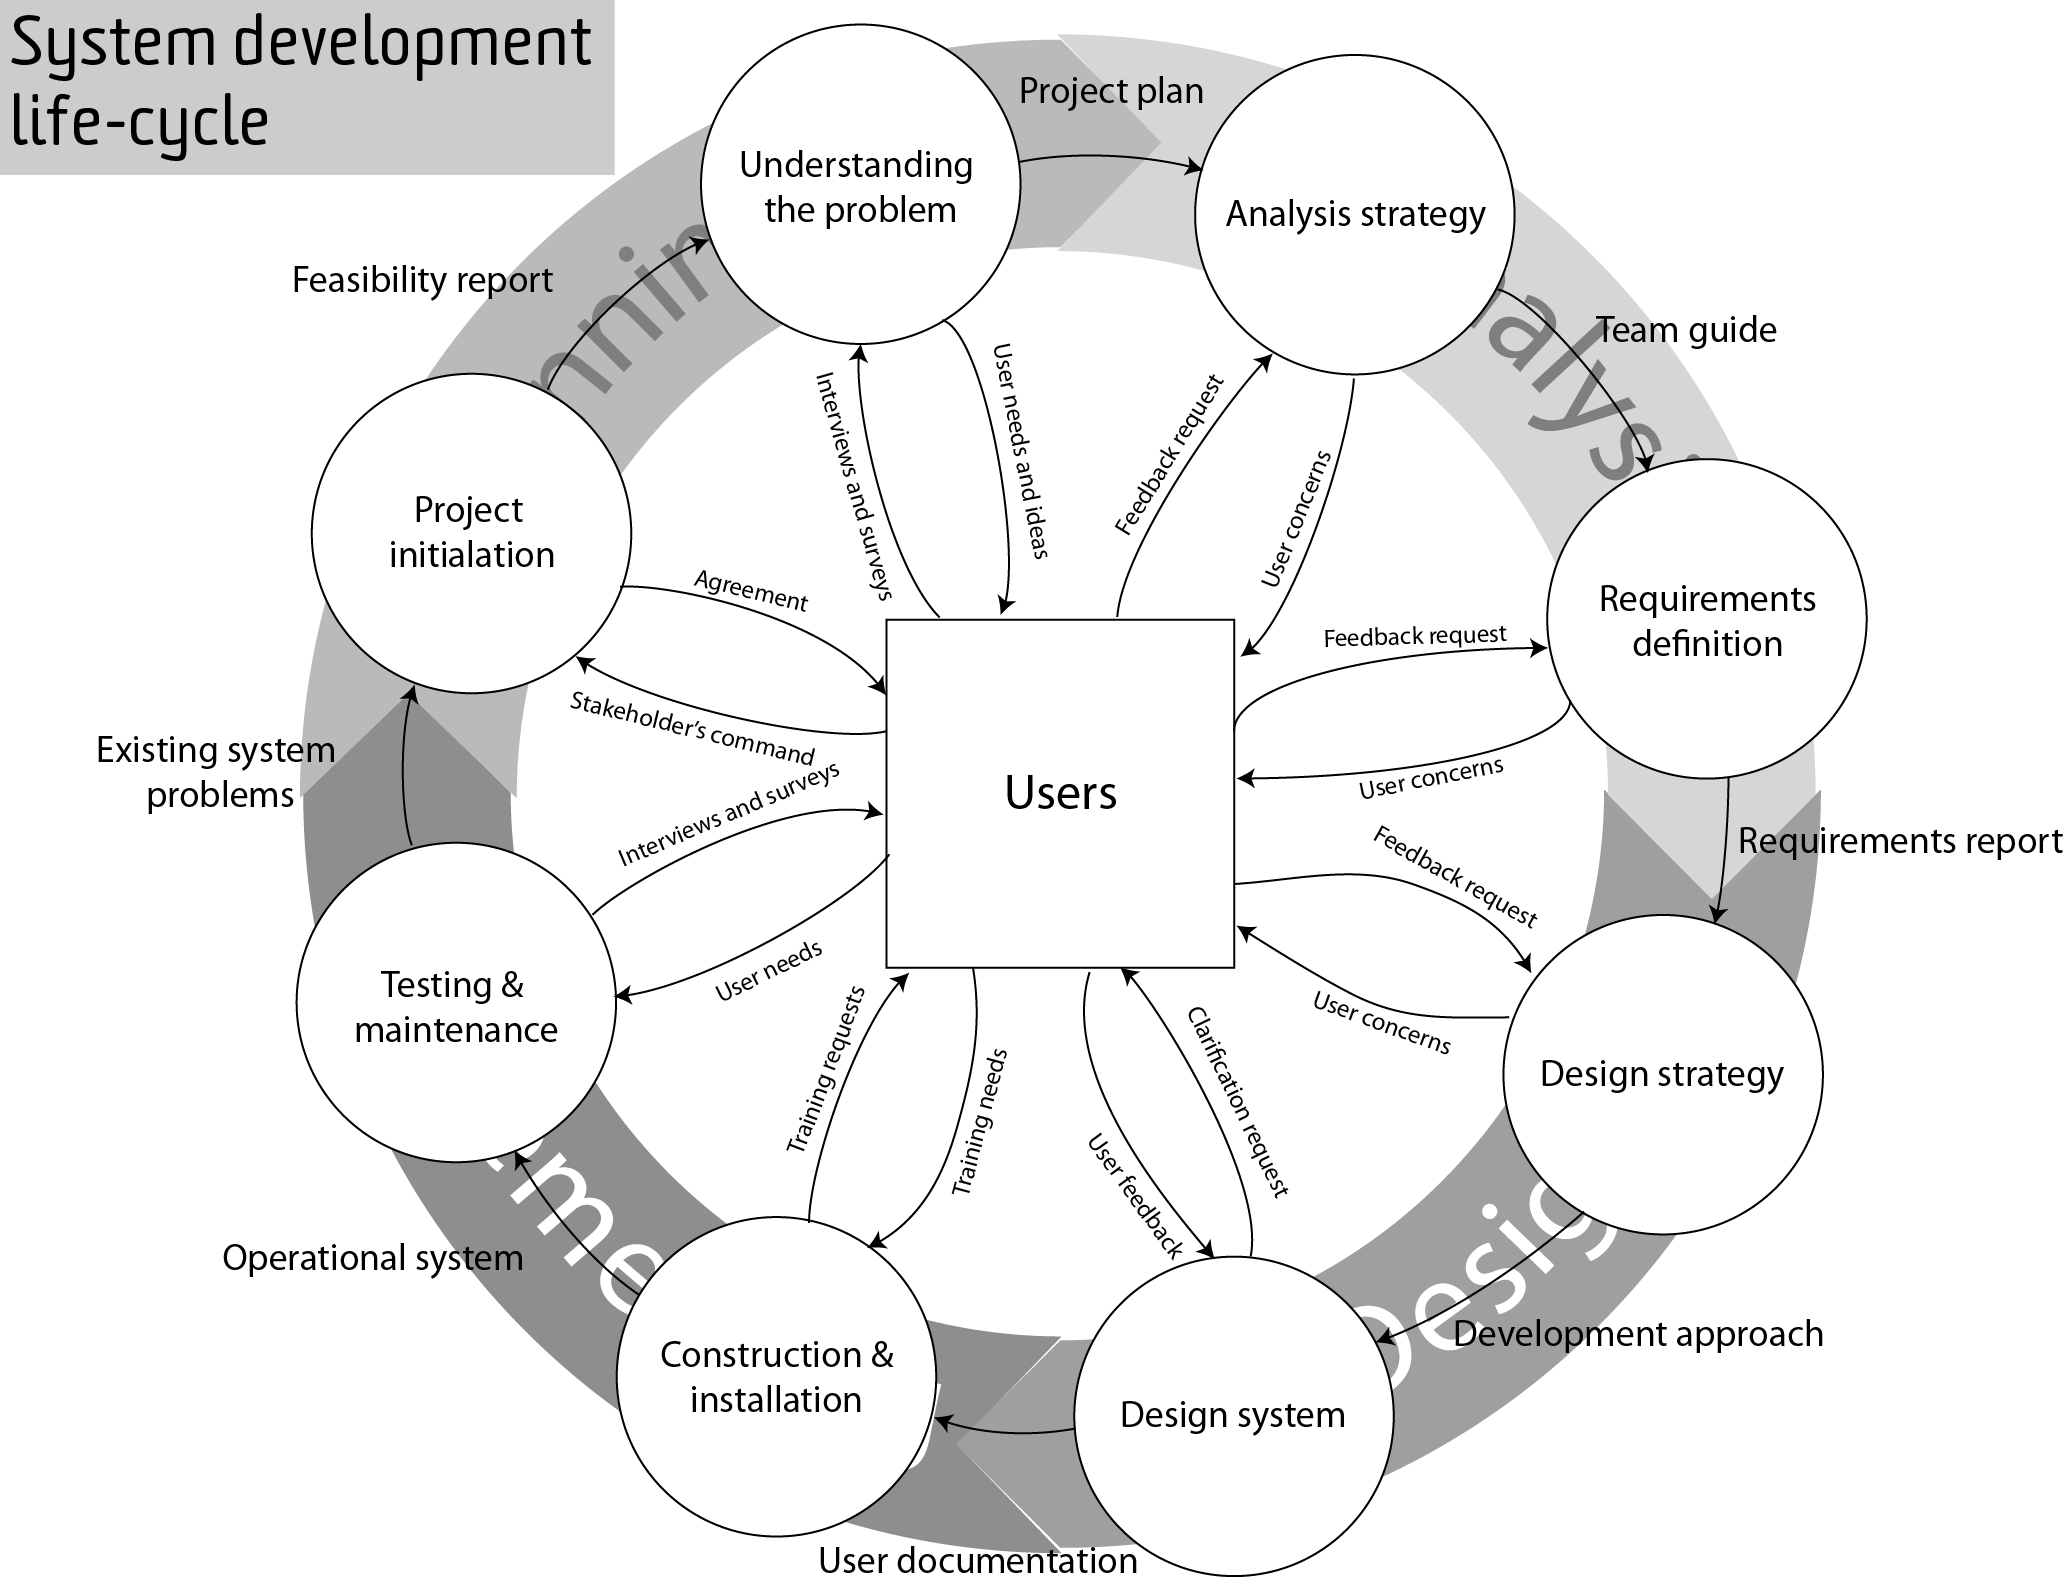 Filesystem development life cycle diagramg wikimedia commons filesystem development life cycle diagramg pooptronica Images